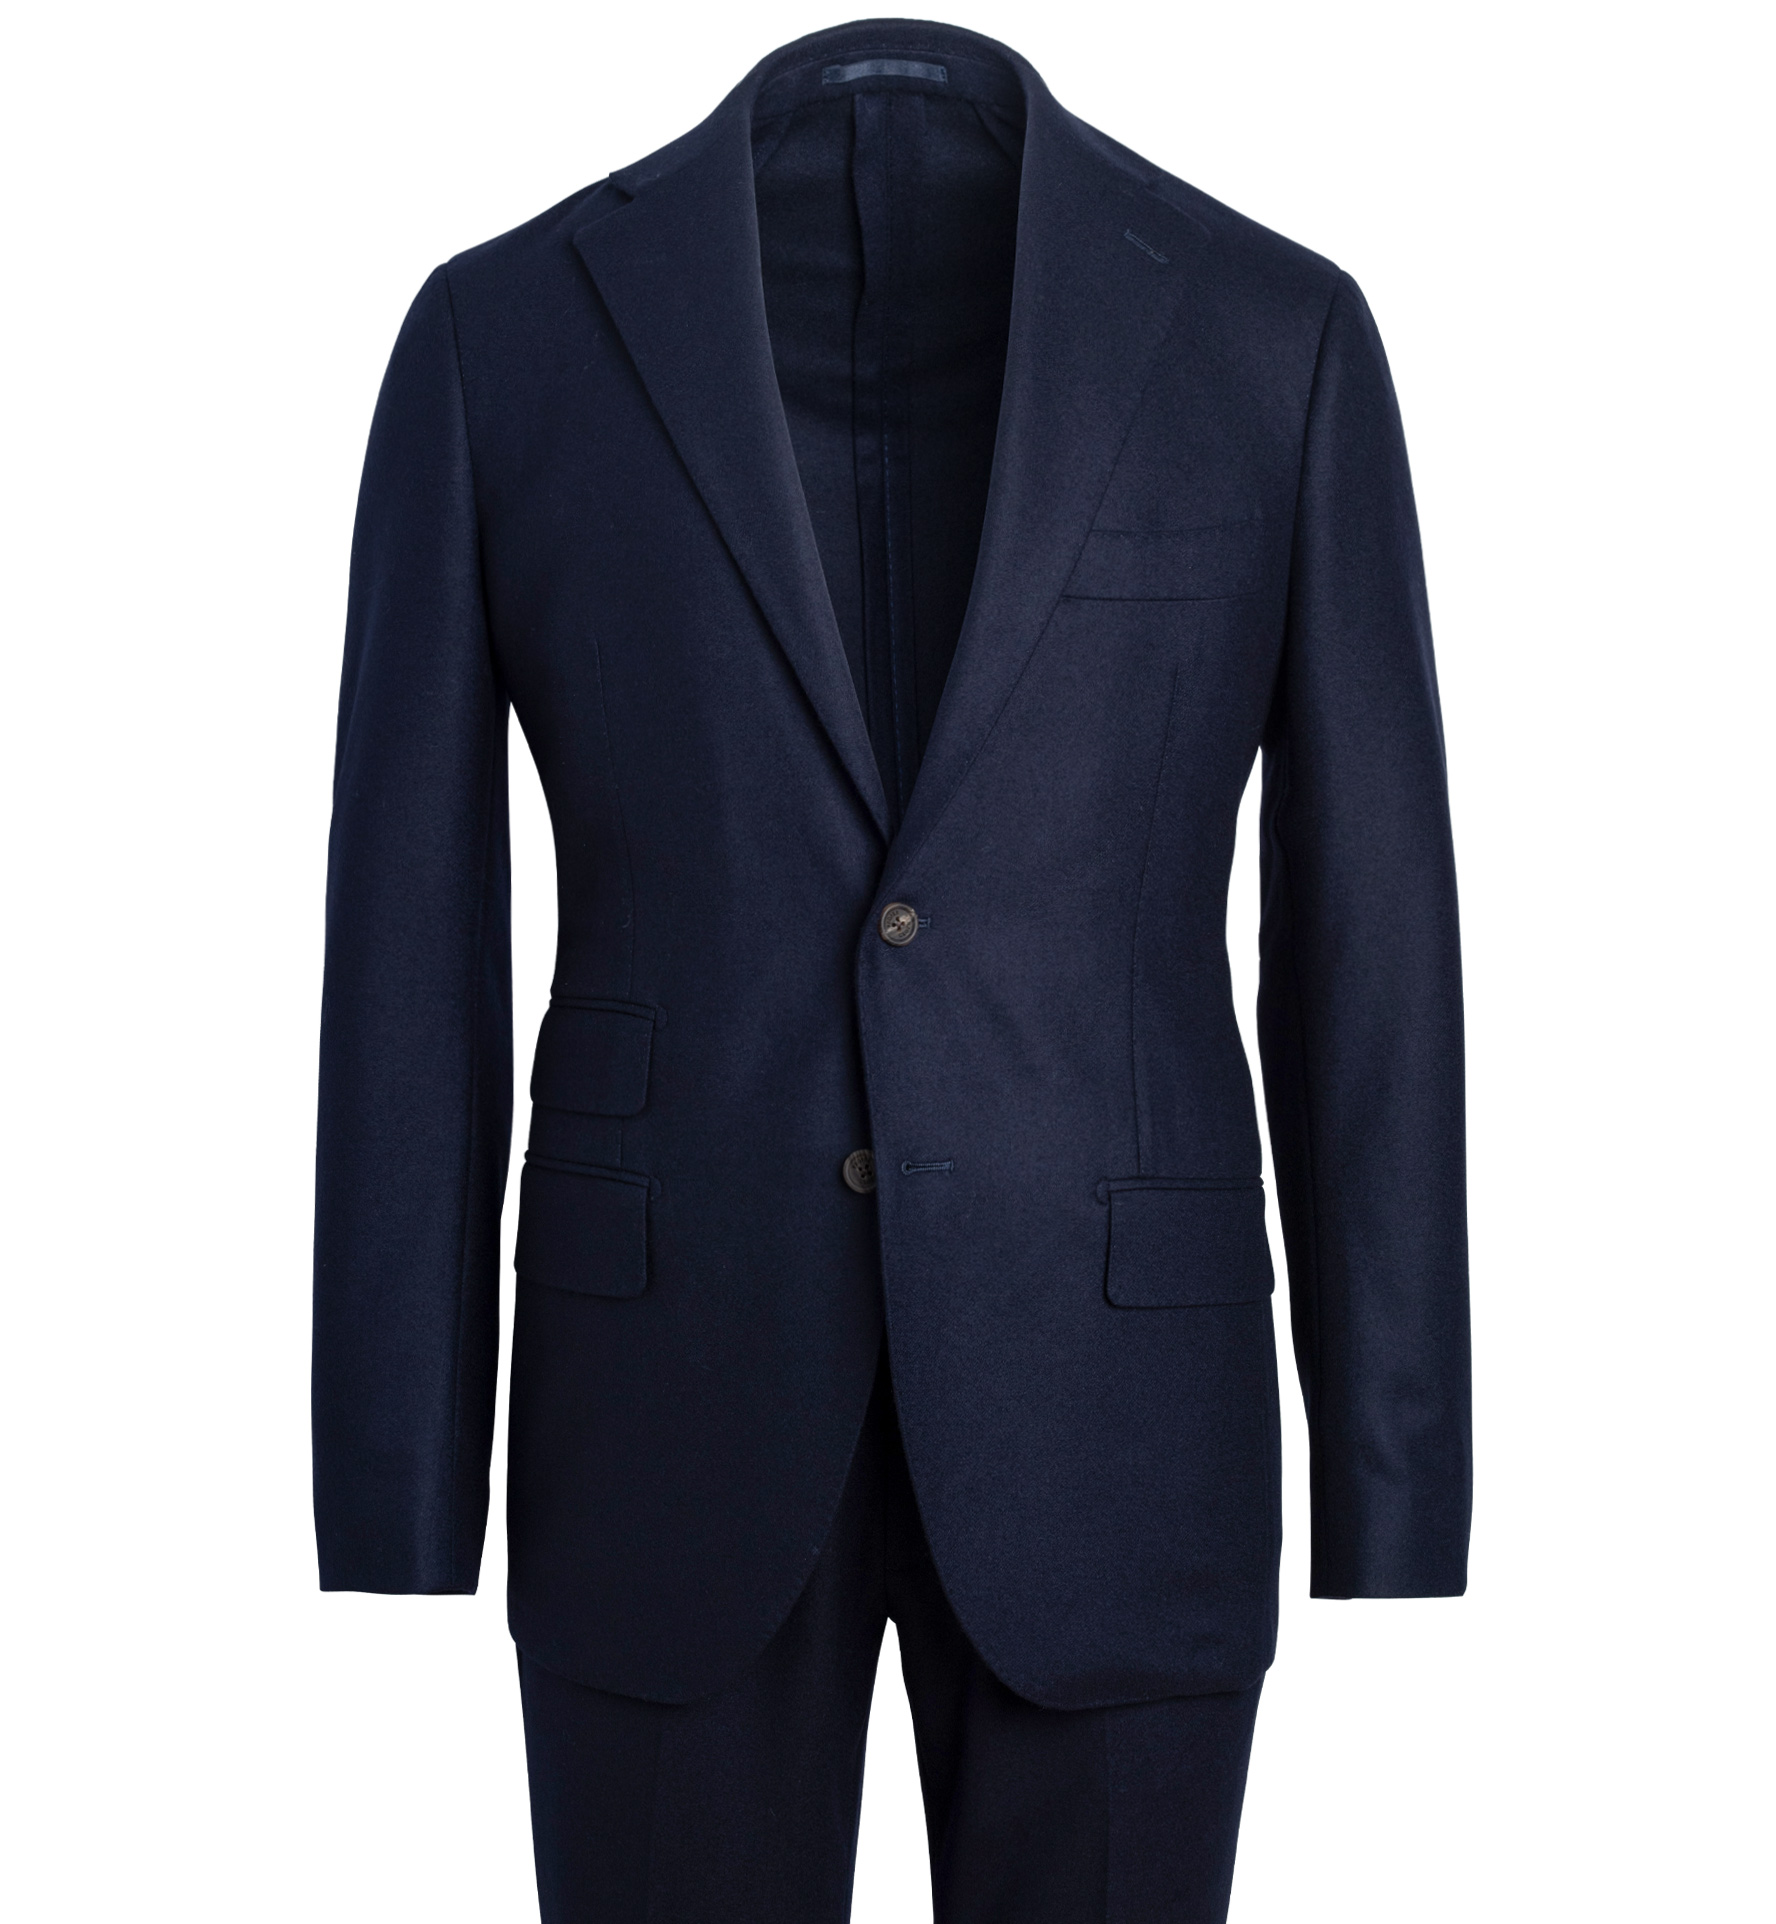 Zoom Image of Bedford Navy Wool Flannel Suit